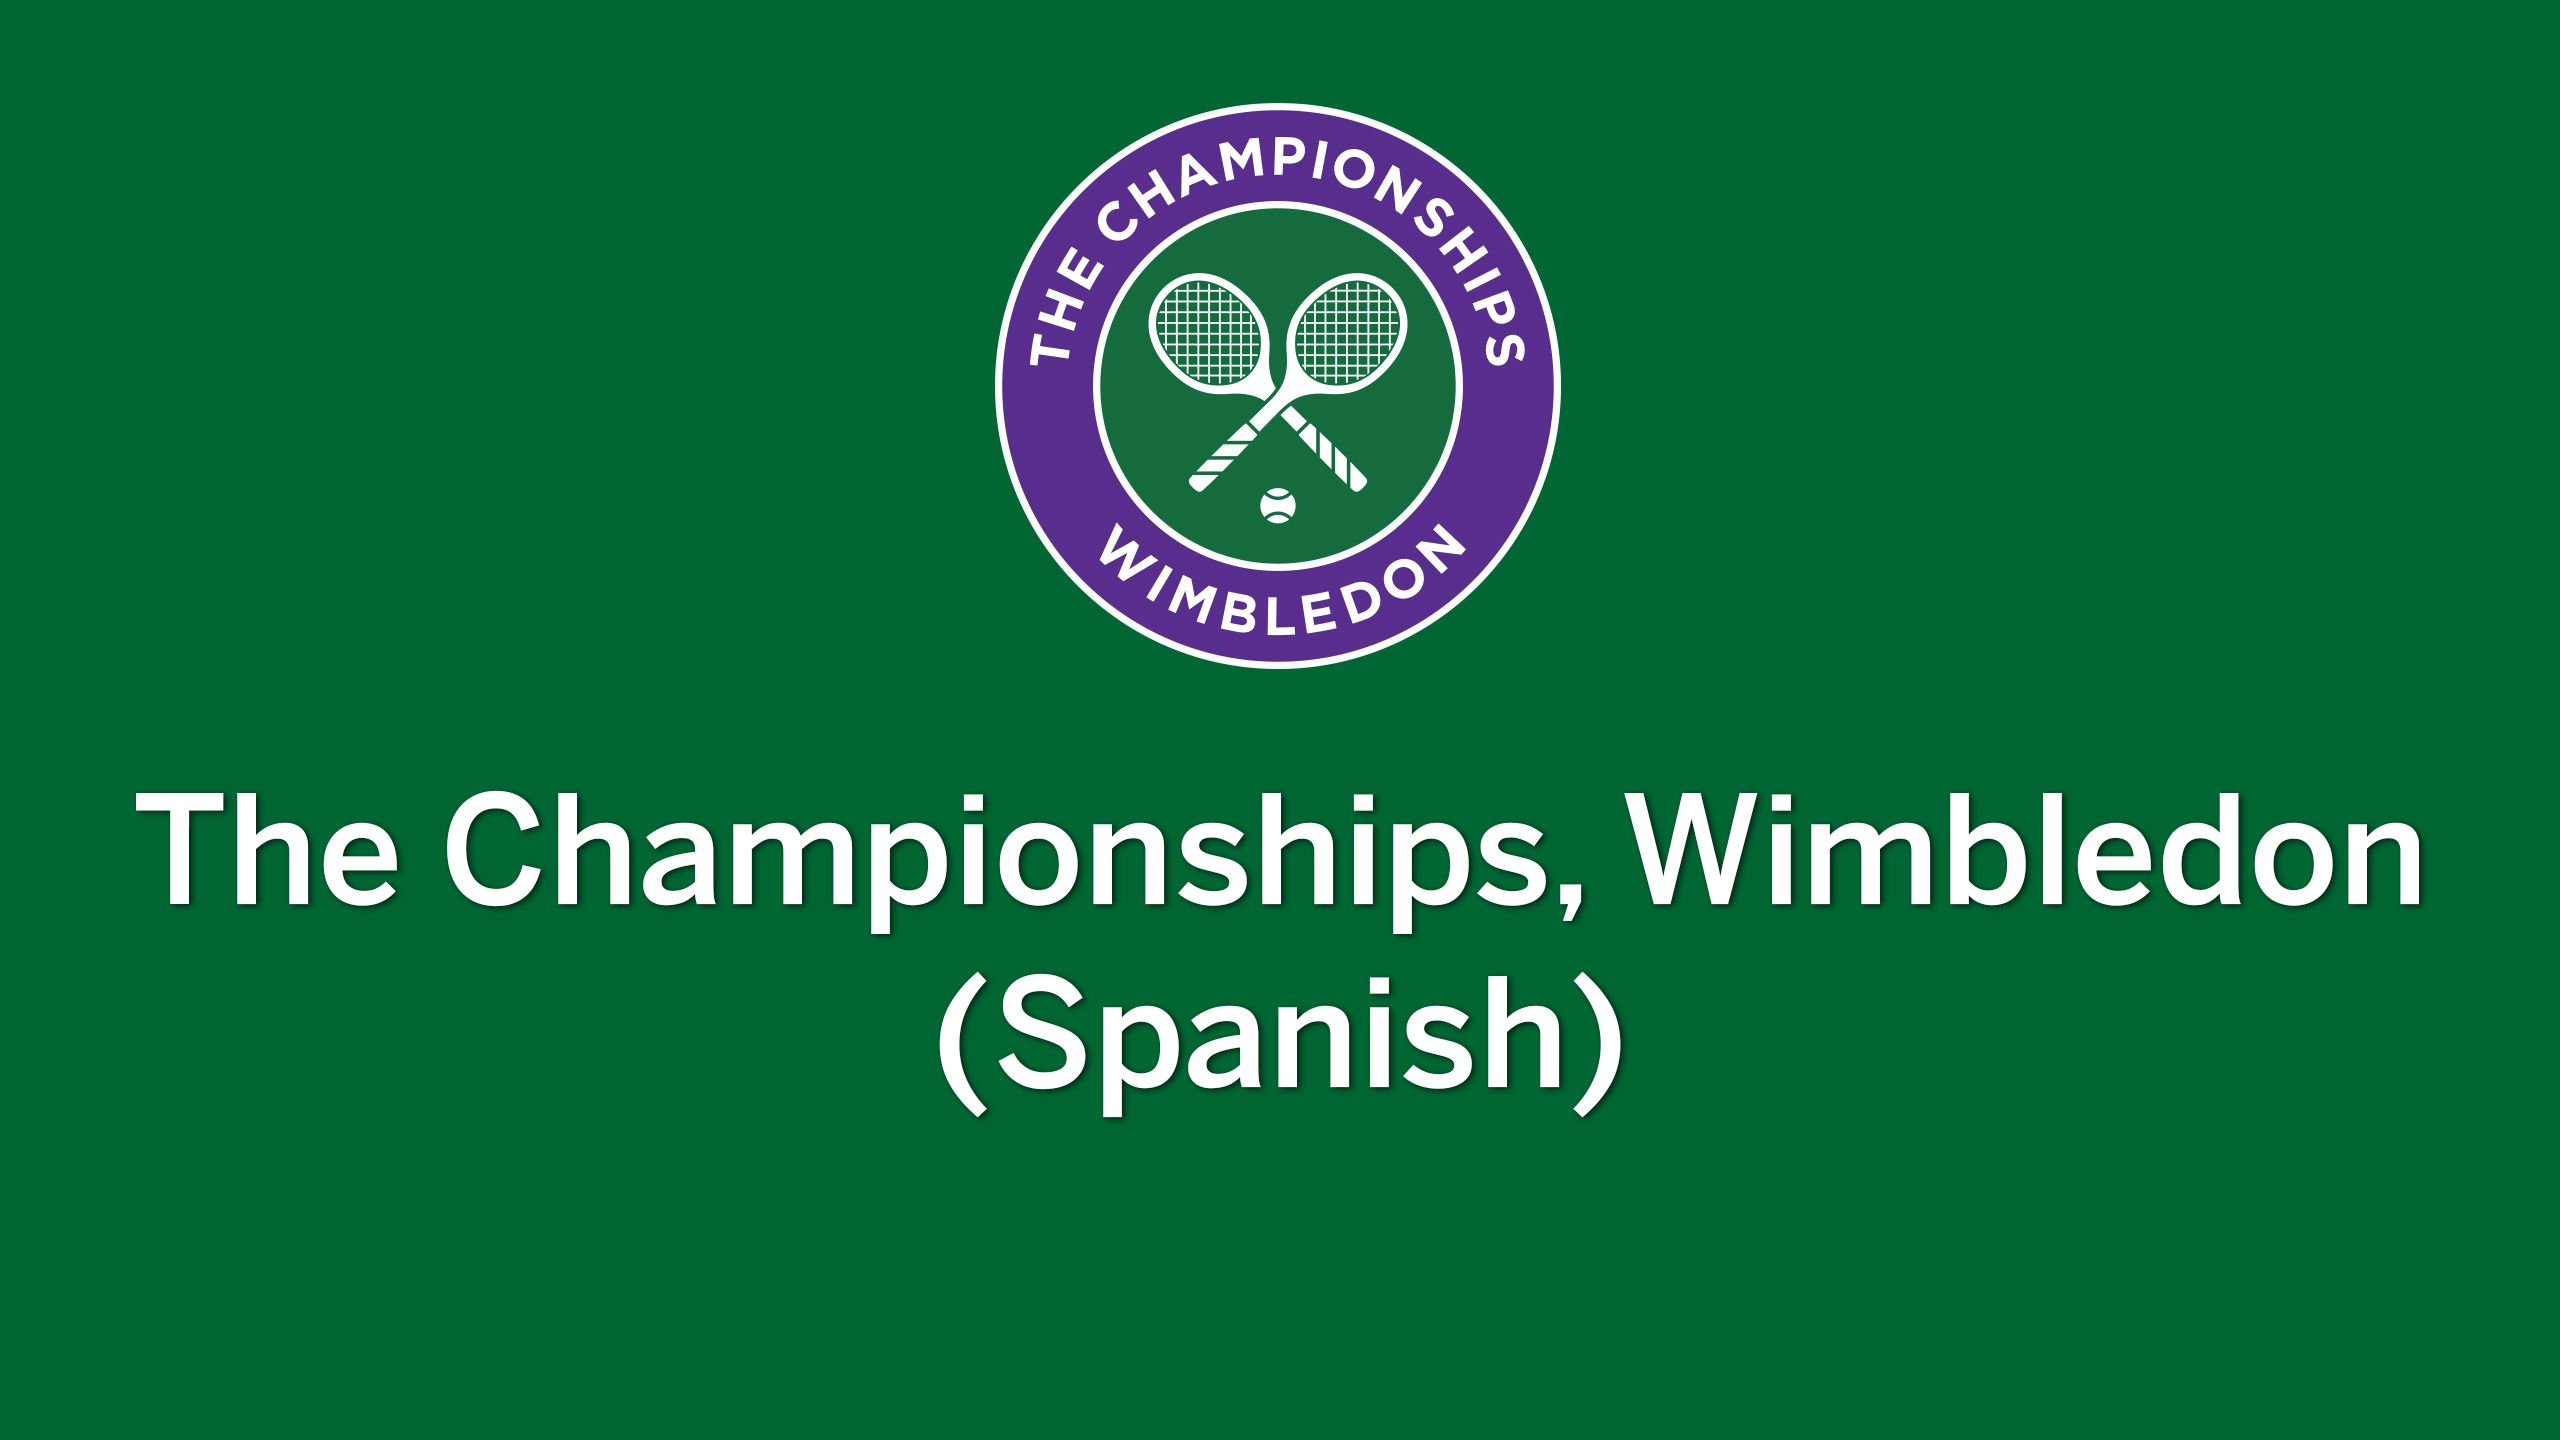 Wimbledon Tennis Championships - In Spanish (Round of 16)